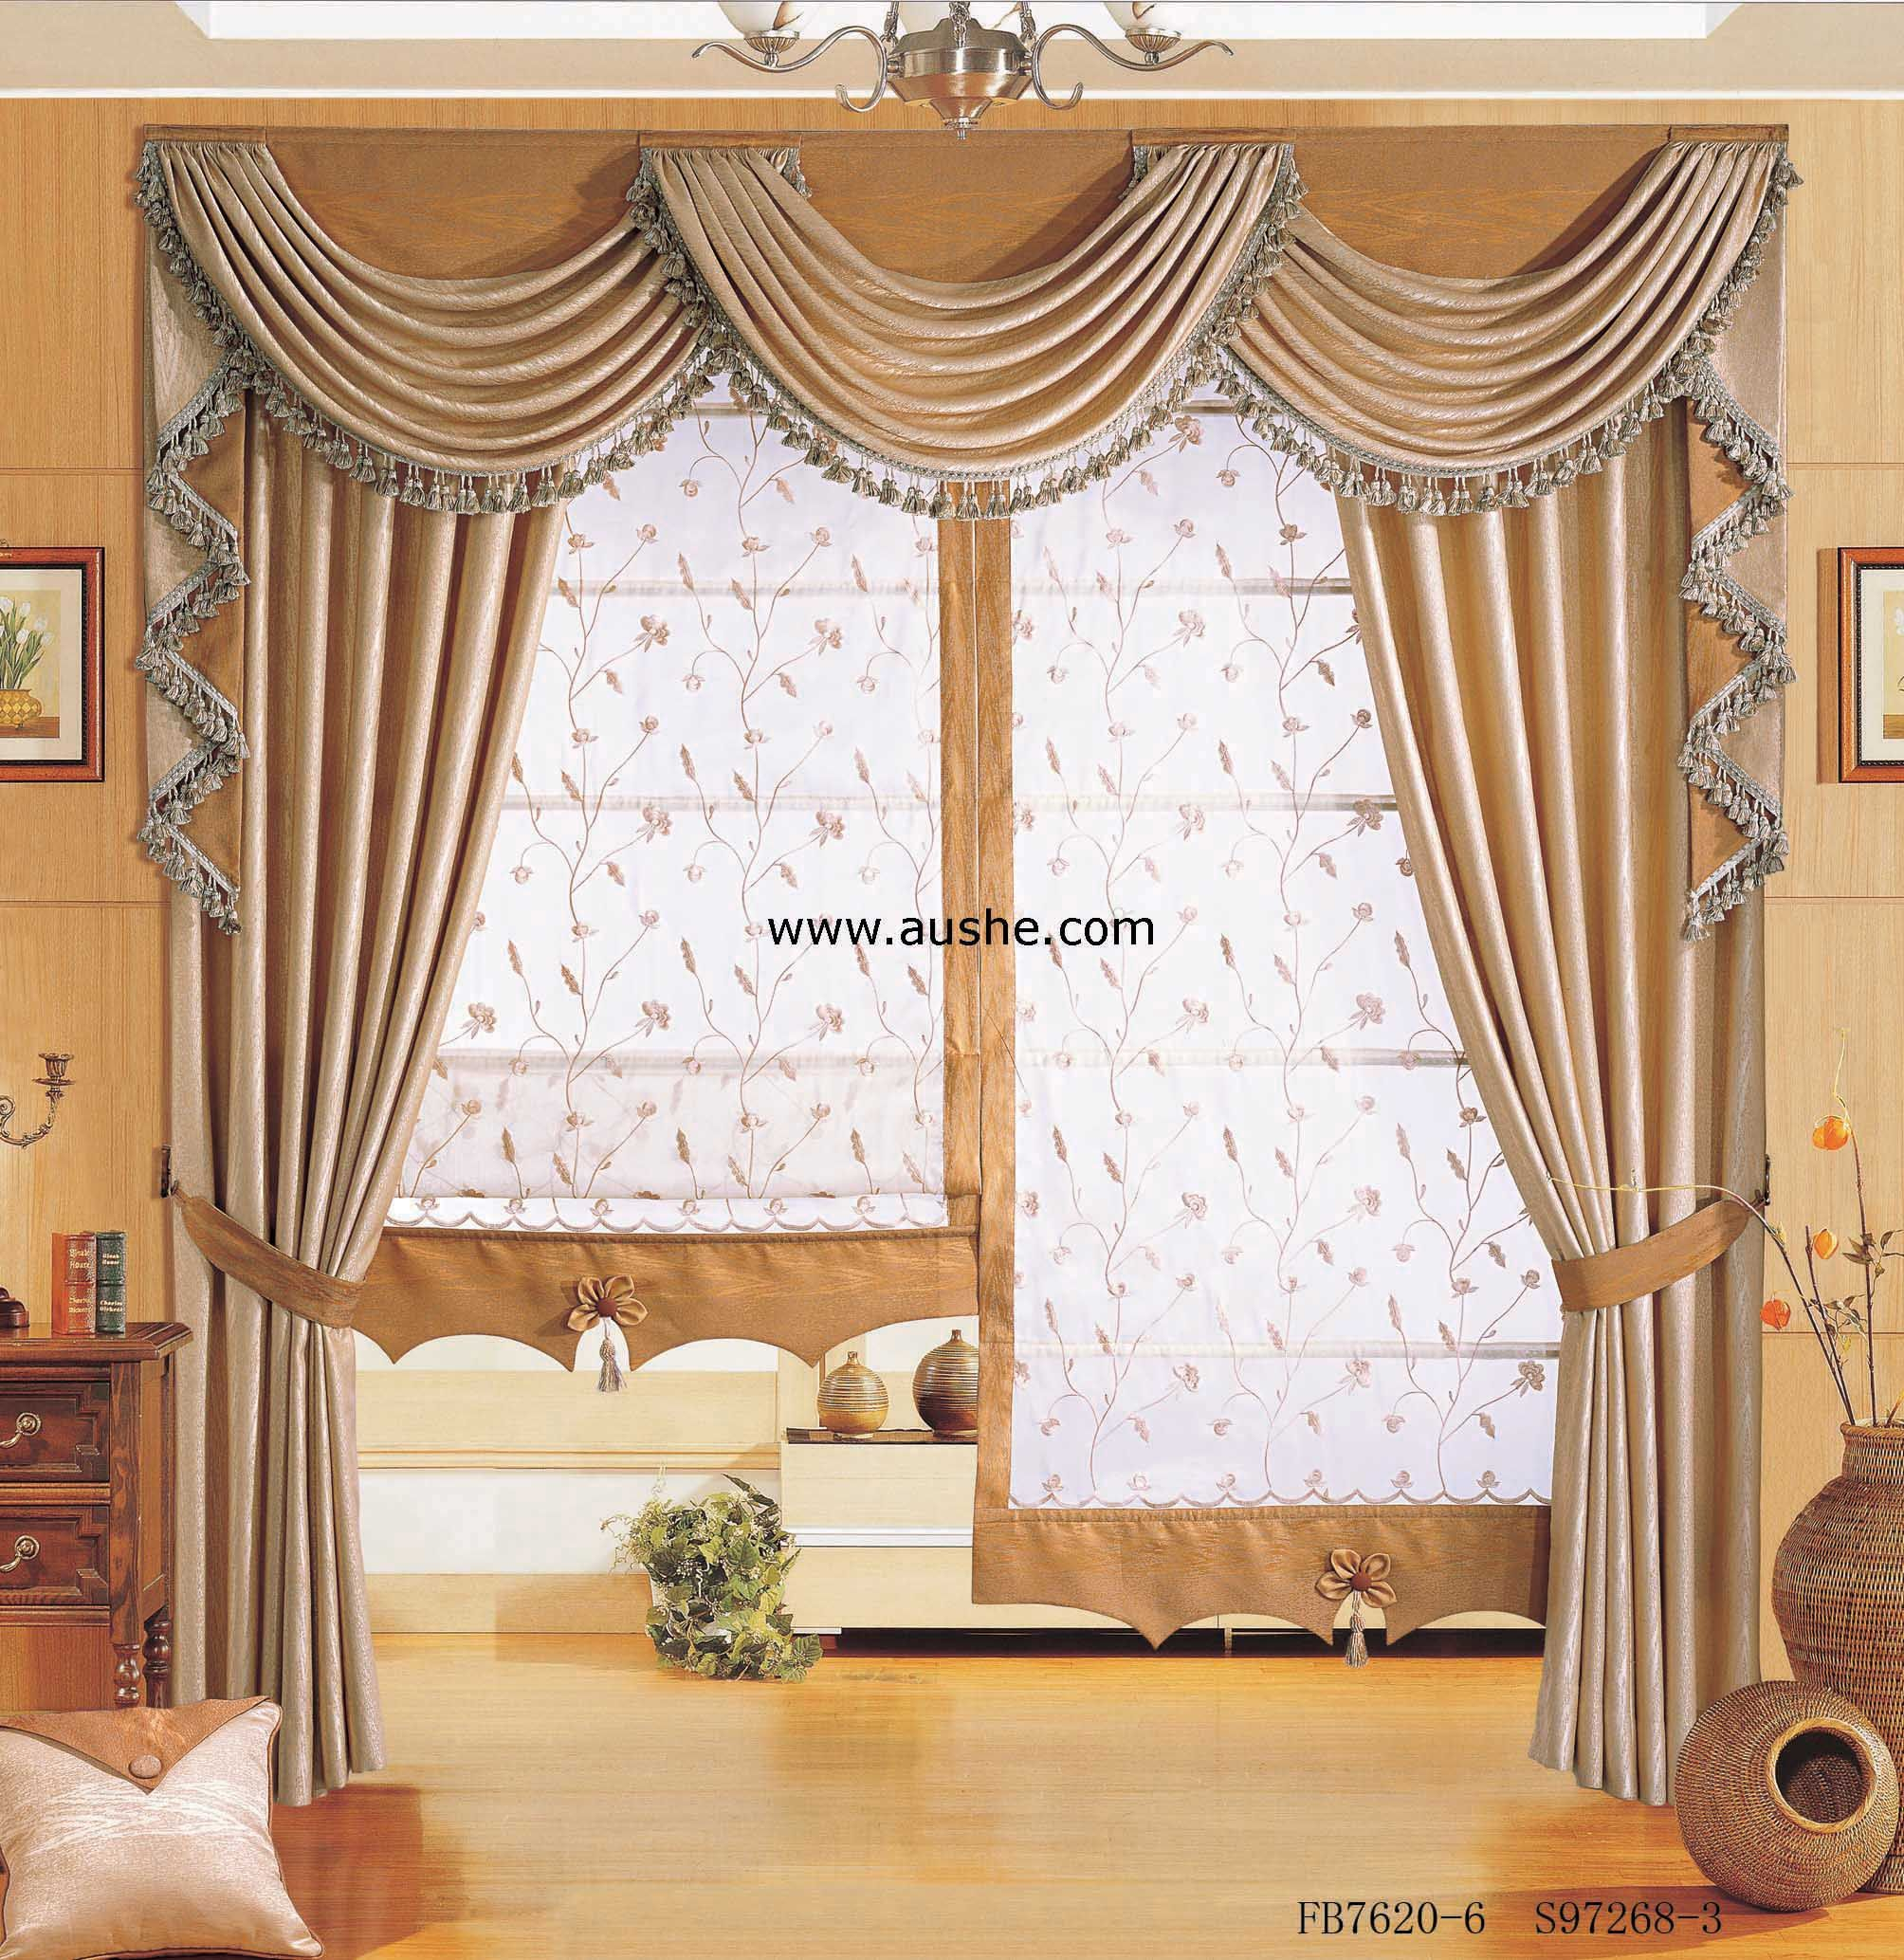 curtain valances google search drapery designdrapery ideascurtain - Valance Design Ideas